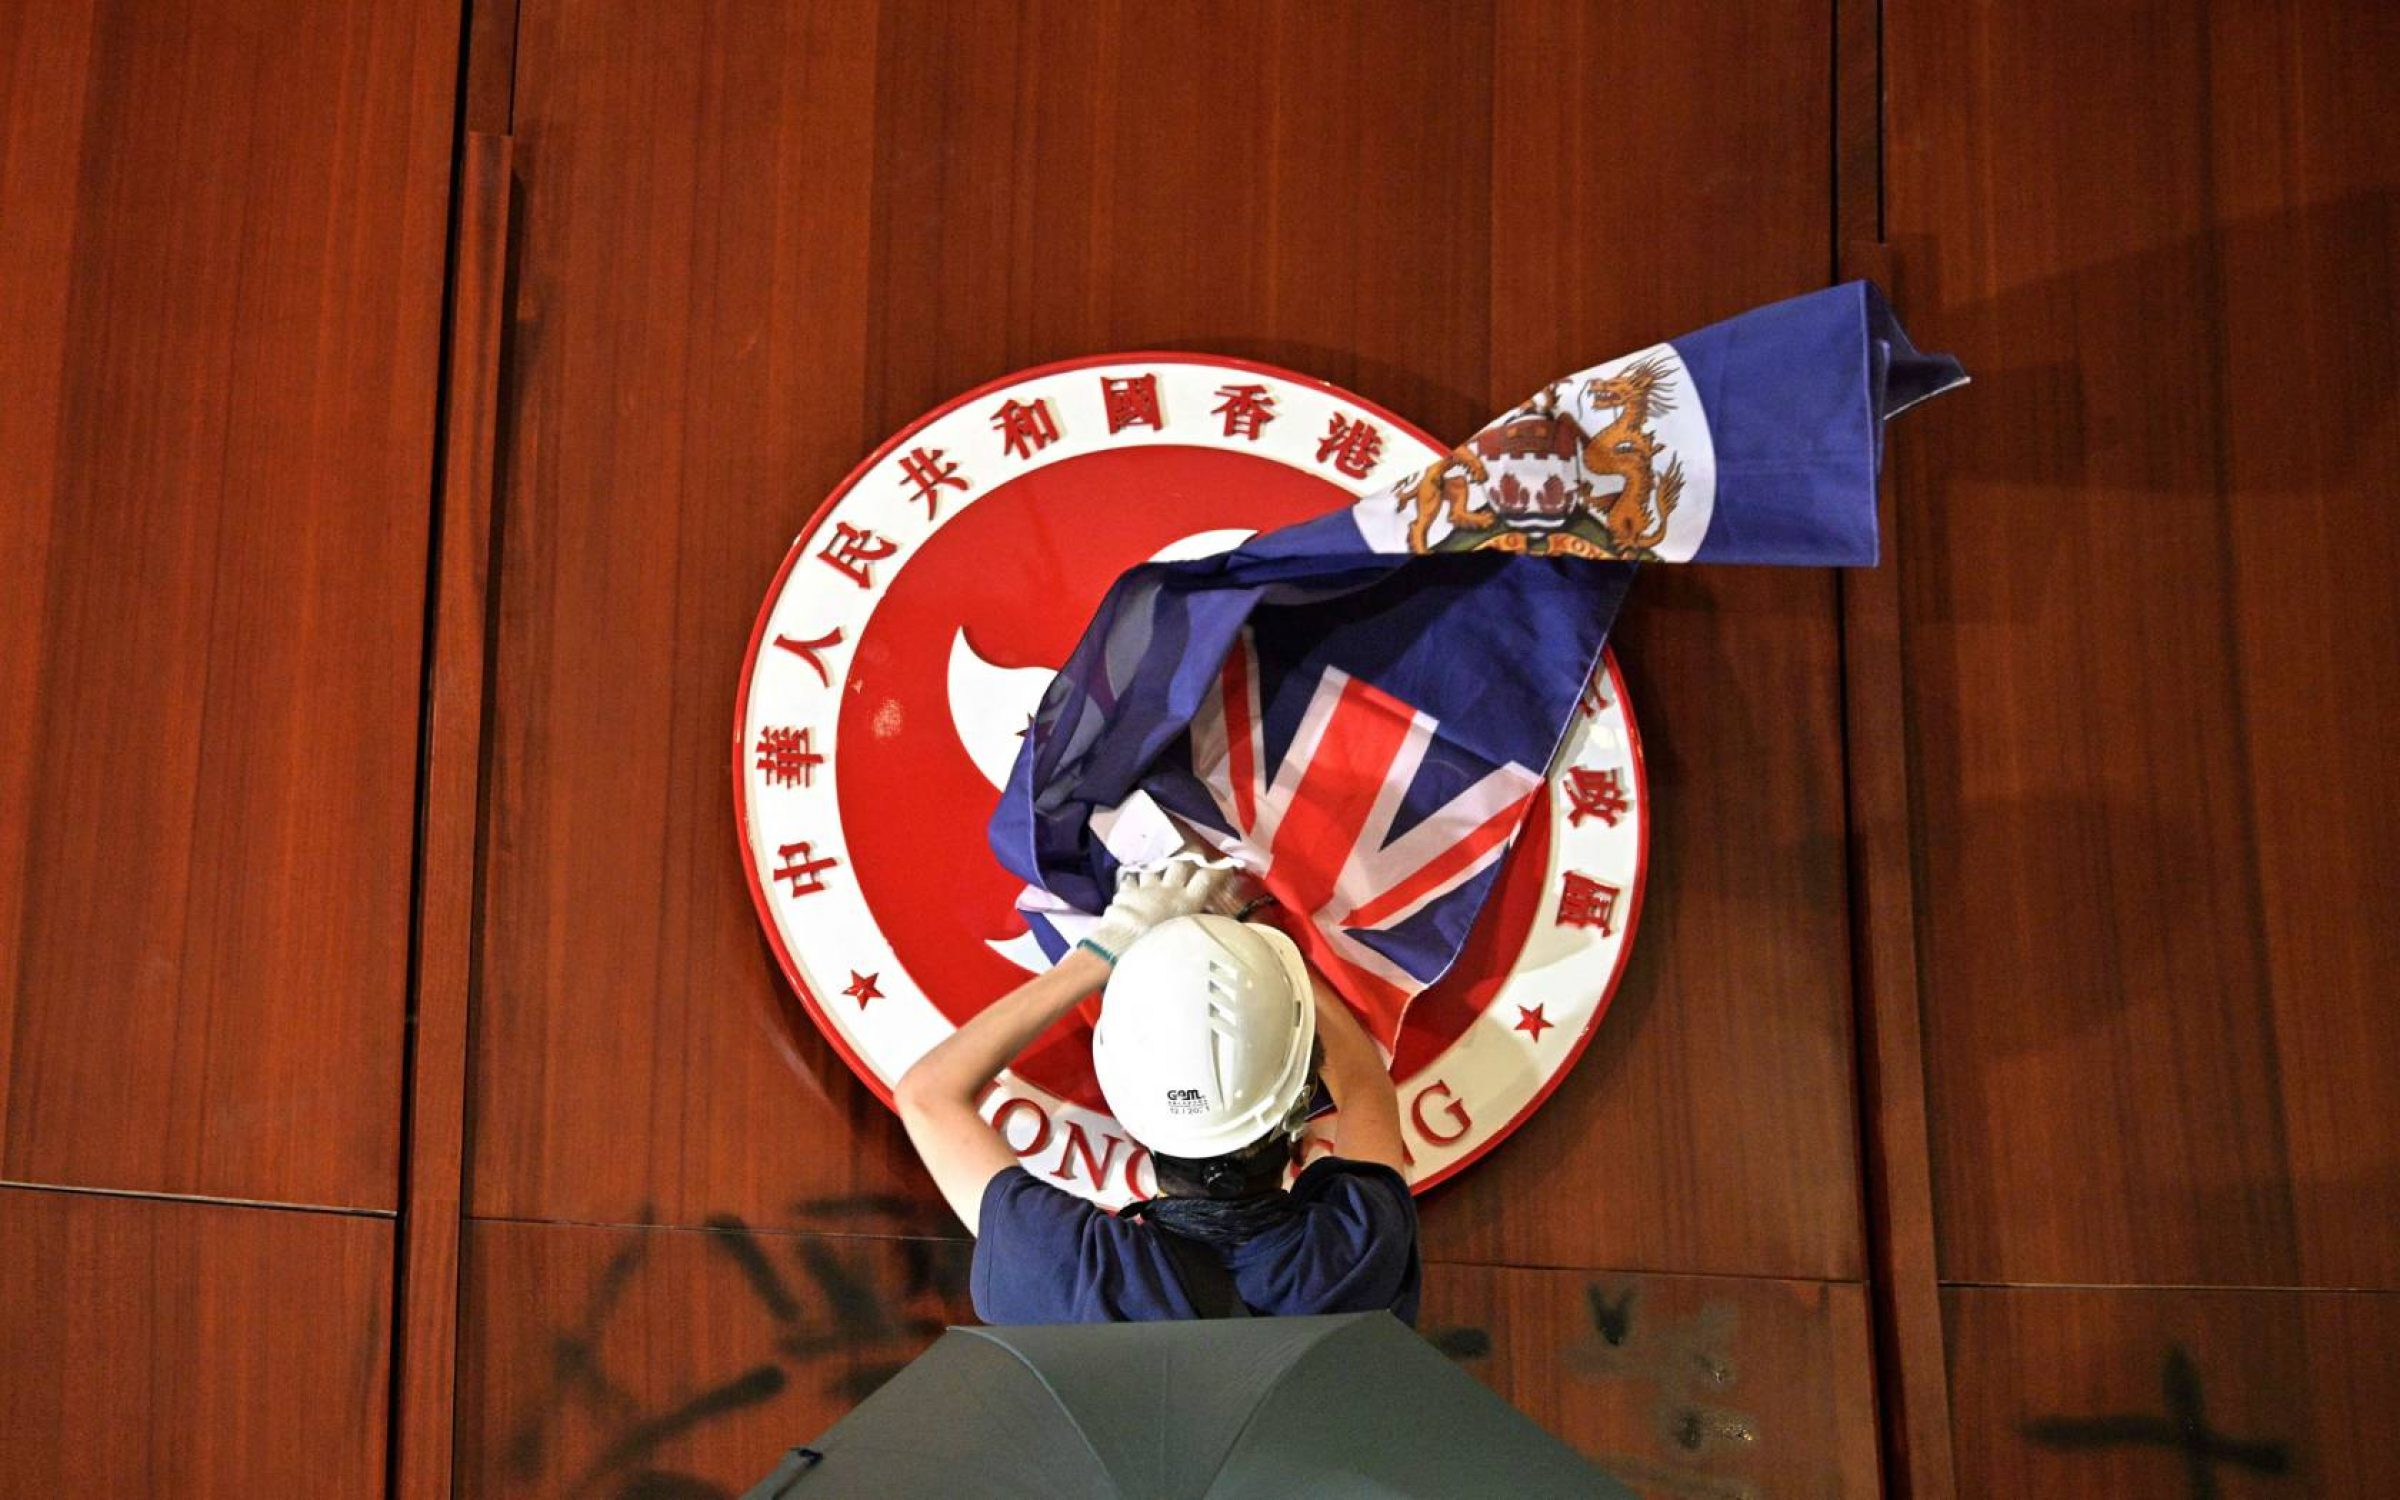 A protester attempts to cover the Hong Kong emblem with a British colonial flag after they broke into the government headquarters in Hong Kong in June 2019, the 22nd anniversary of the city's handover from Britain to China.